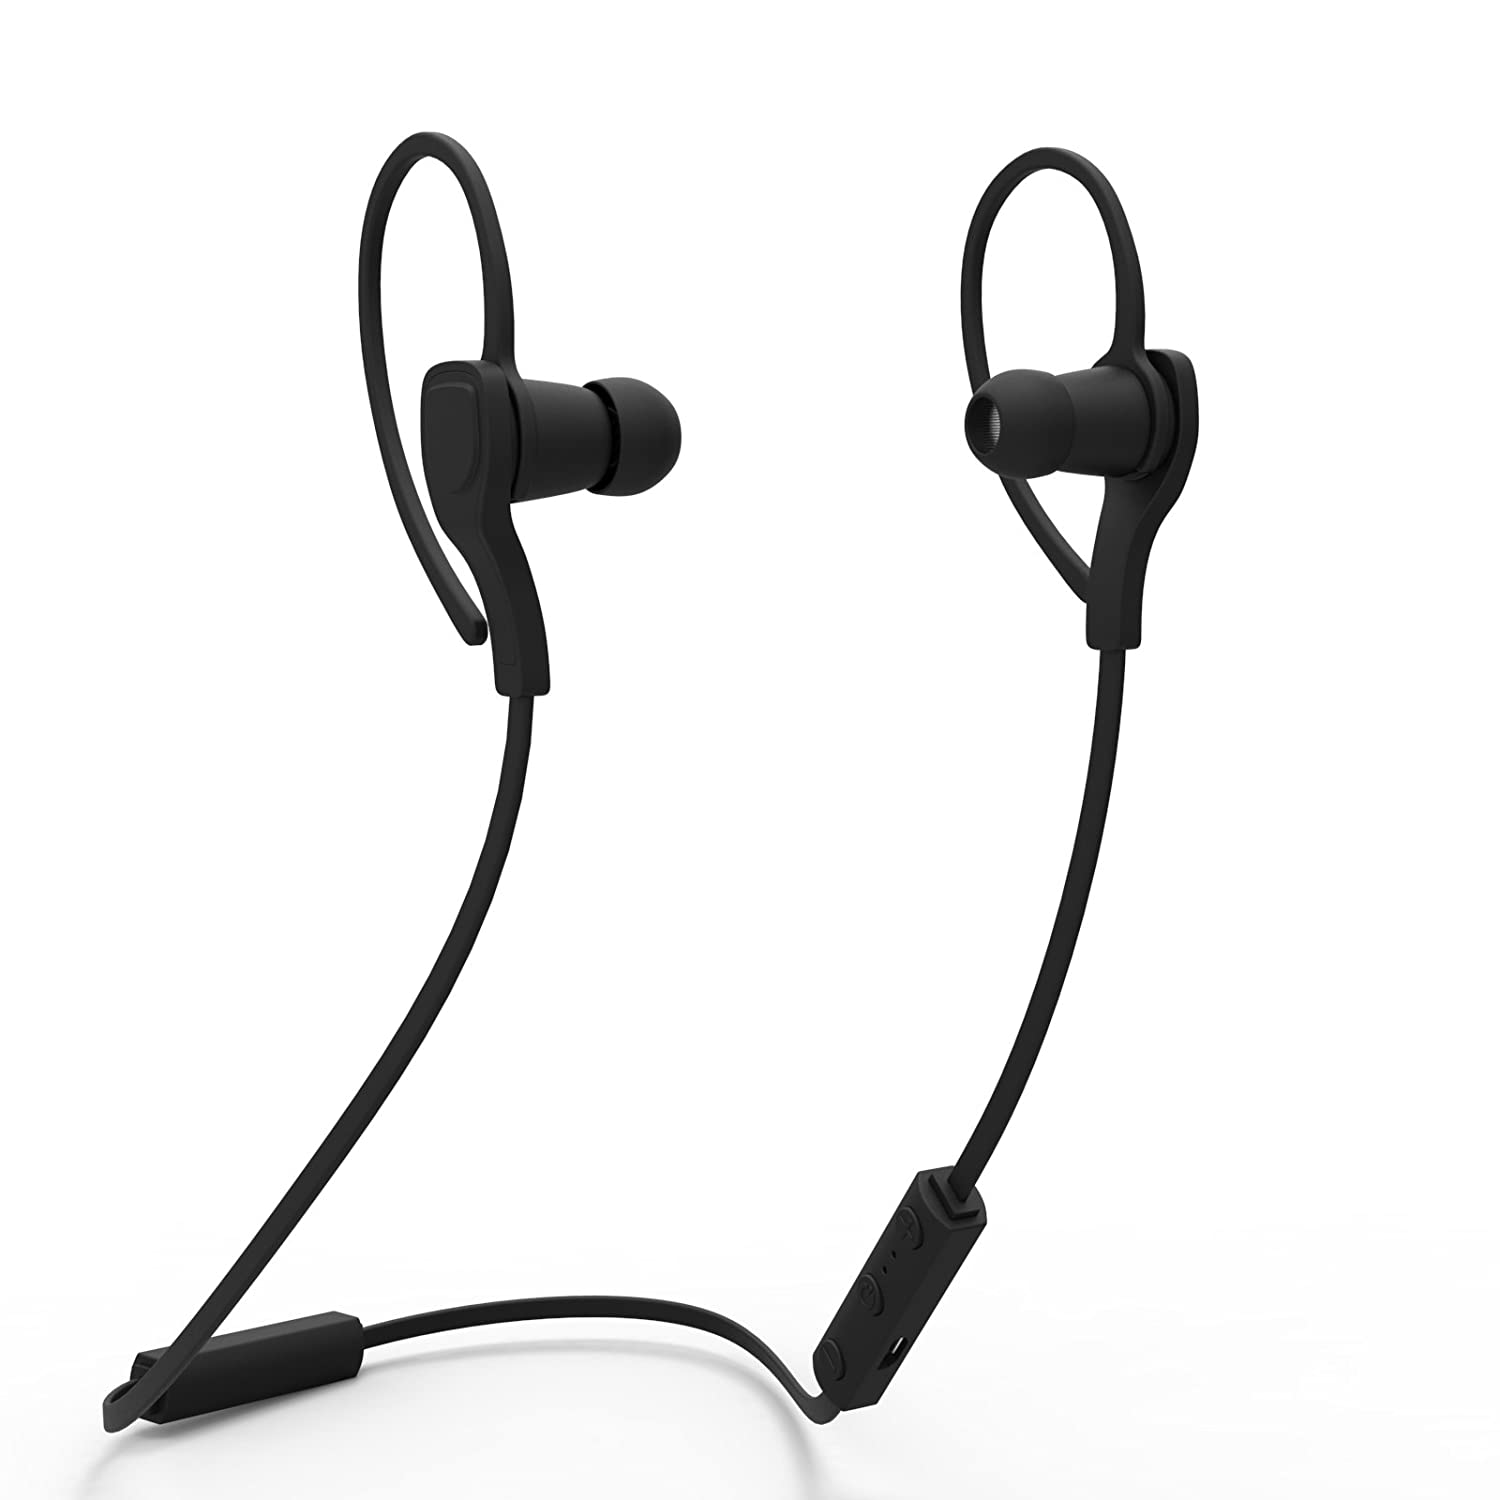 Bluetooth Headphones, HC Wireless Bluetooth Earbuds Headset Earphones with Micro Phone Noise Cancelling,Running, Exercise,Hiking Sports;Sweatproof. Suitable for IOS & Android Devices